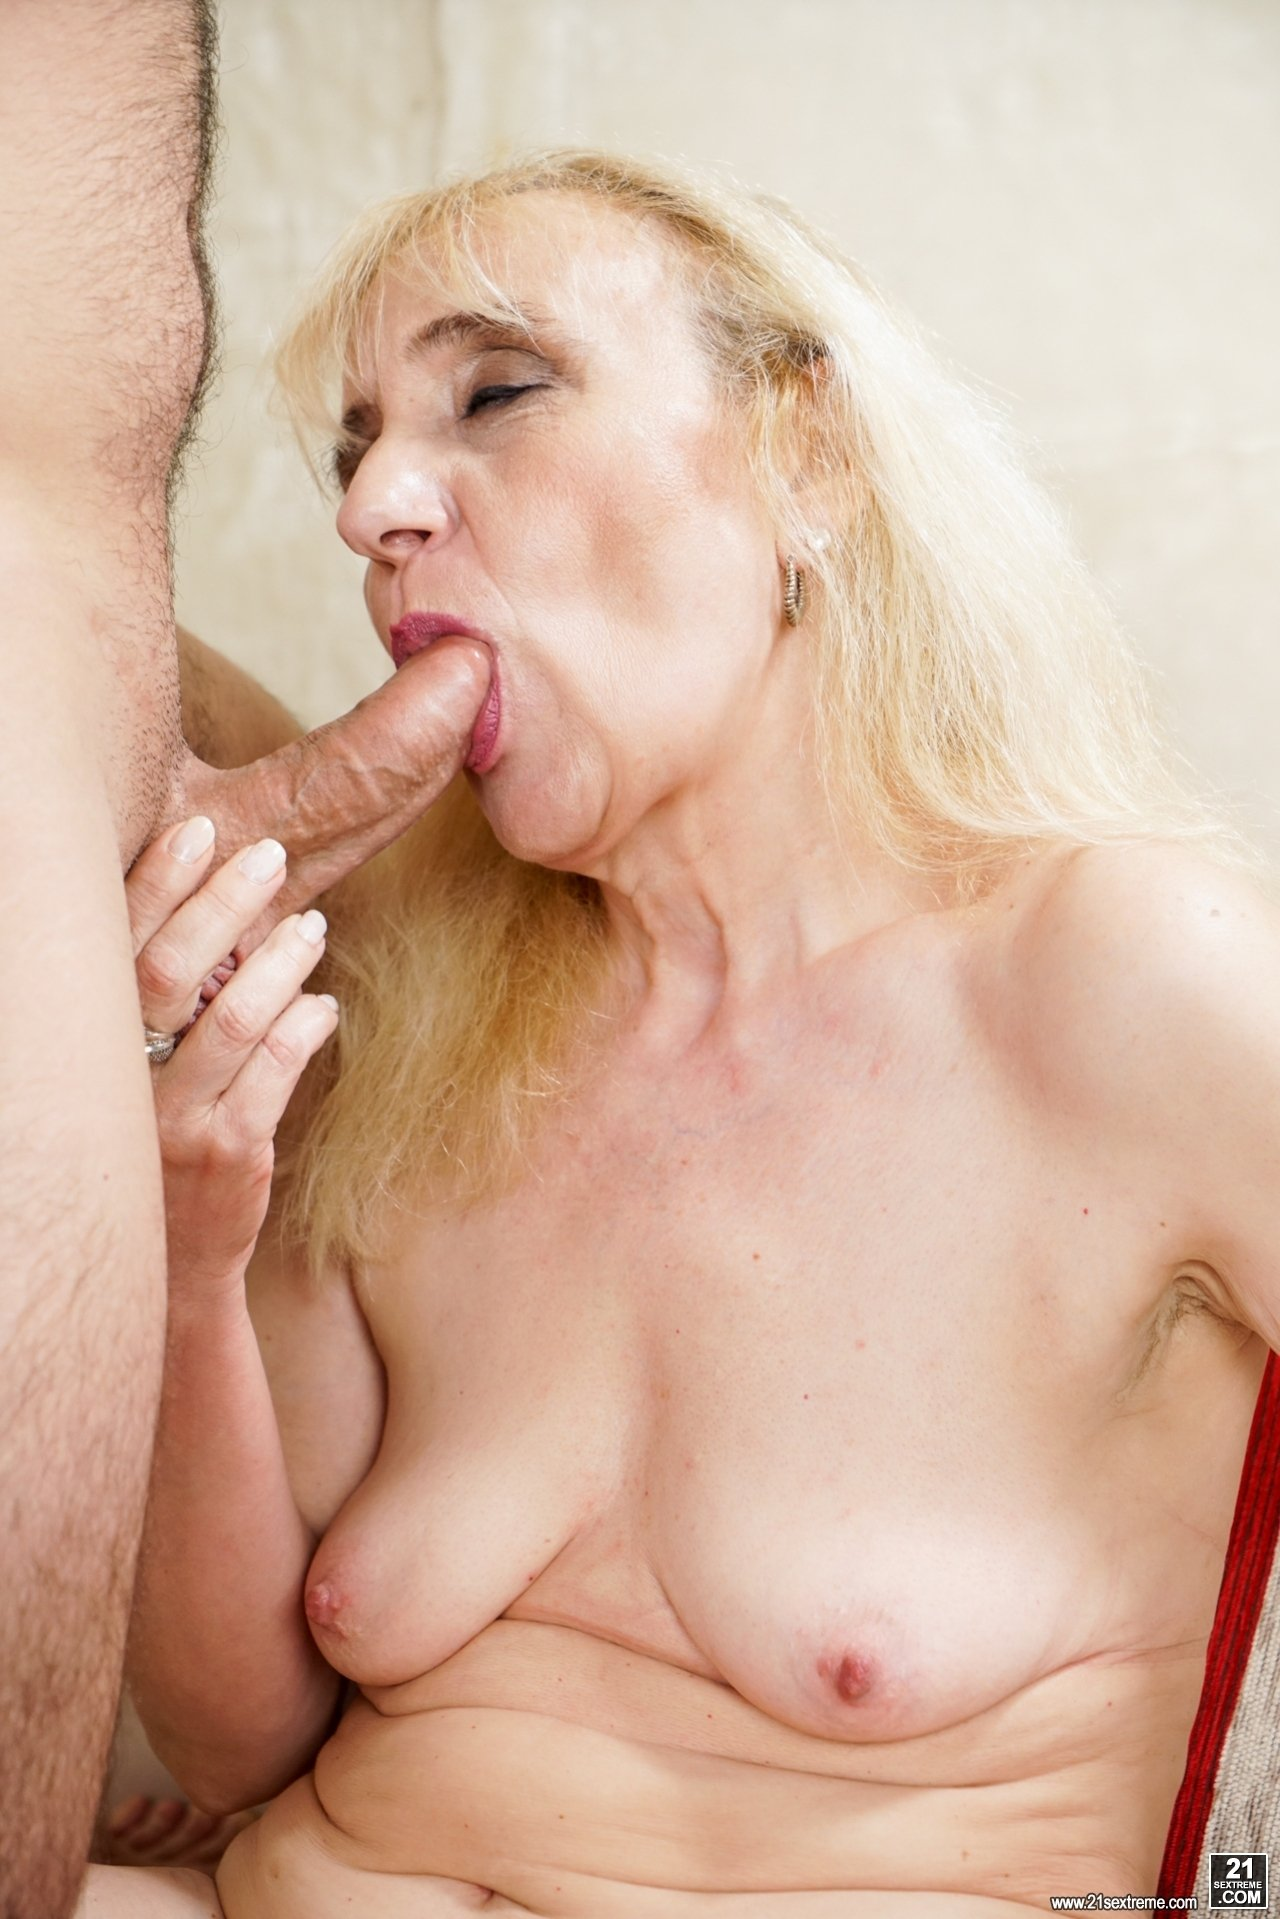 Amateur drinks wife outside granny porn